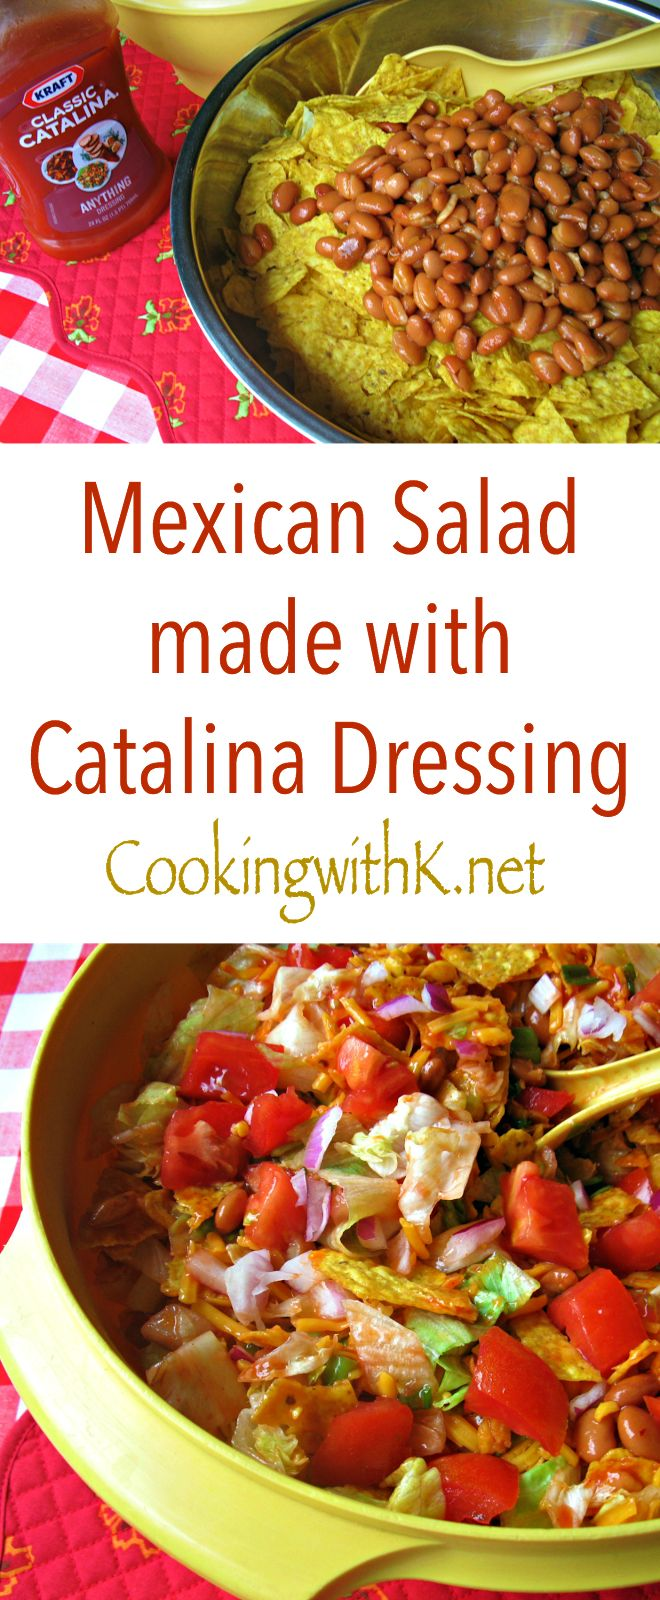 Cooking with K - Southern Kitchen Happenings: Granny's Recipe! Mexican Salad made with Catalina Dressing {Perfect for July 4th!}